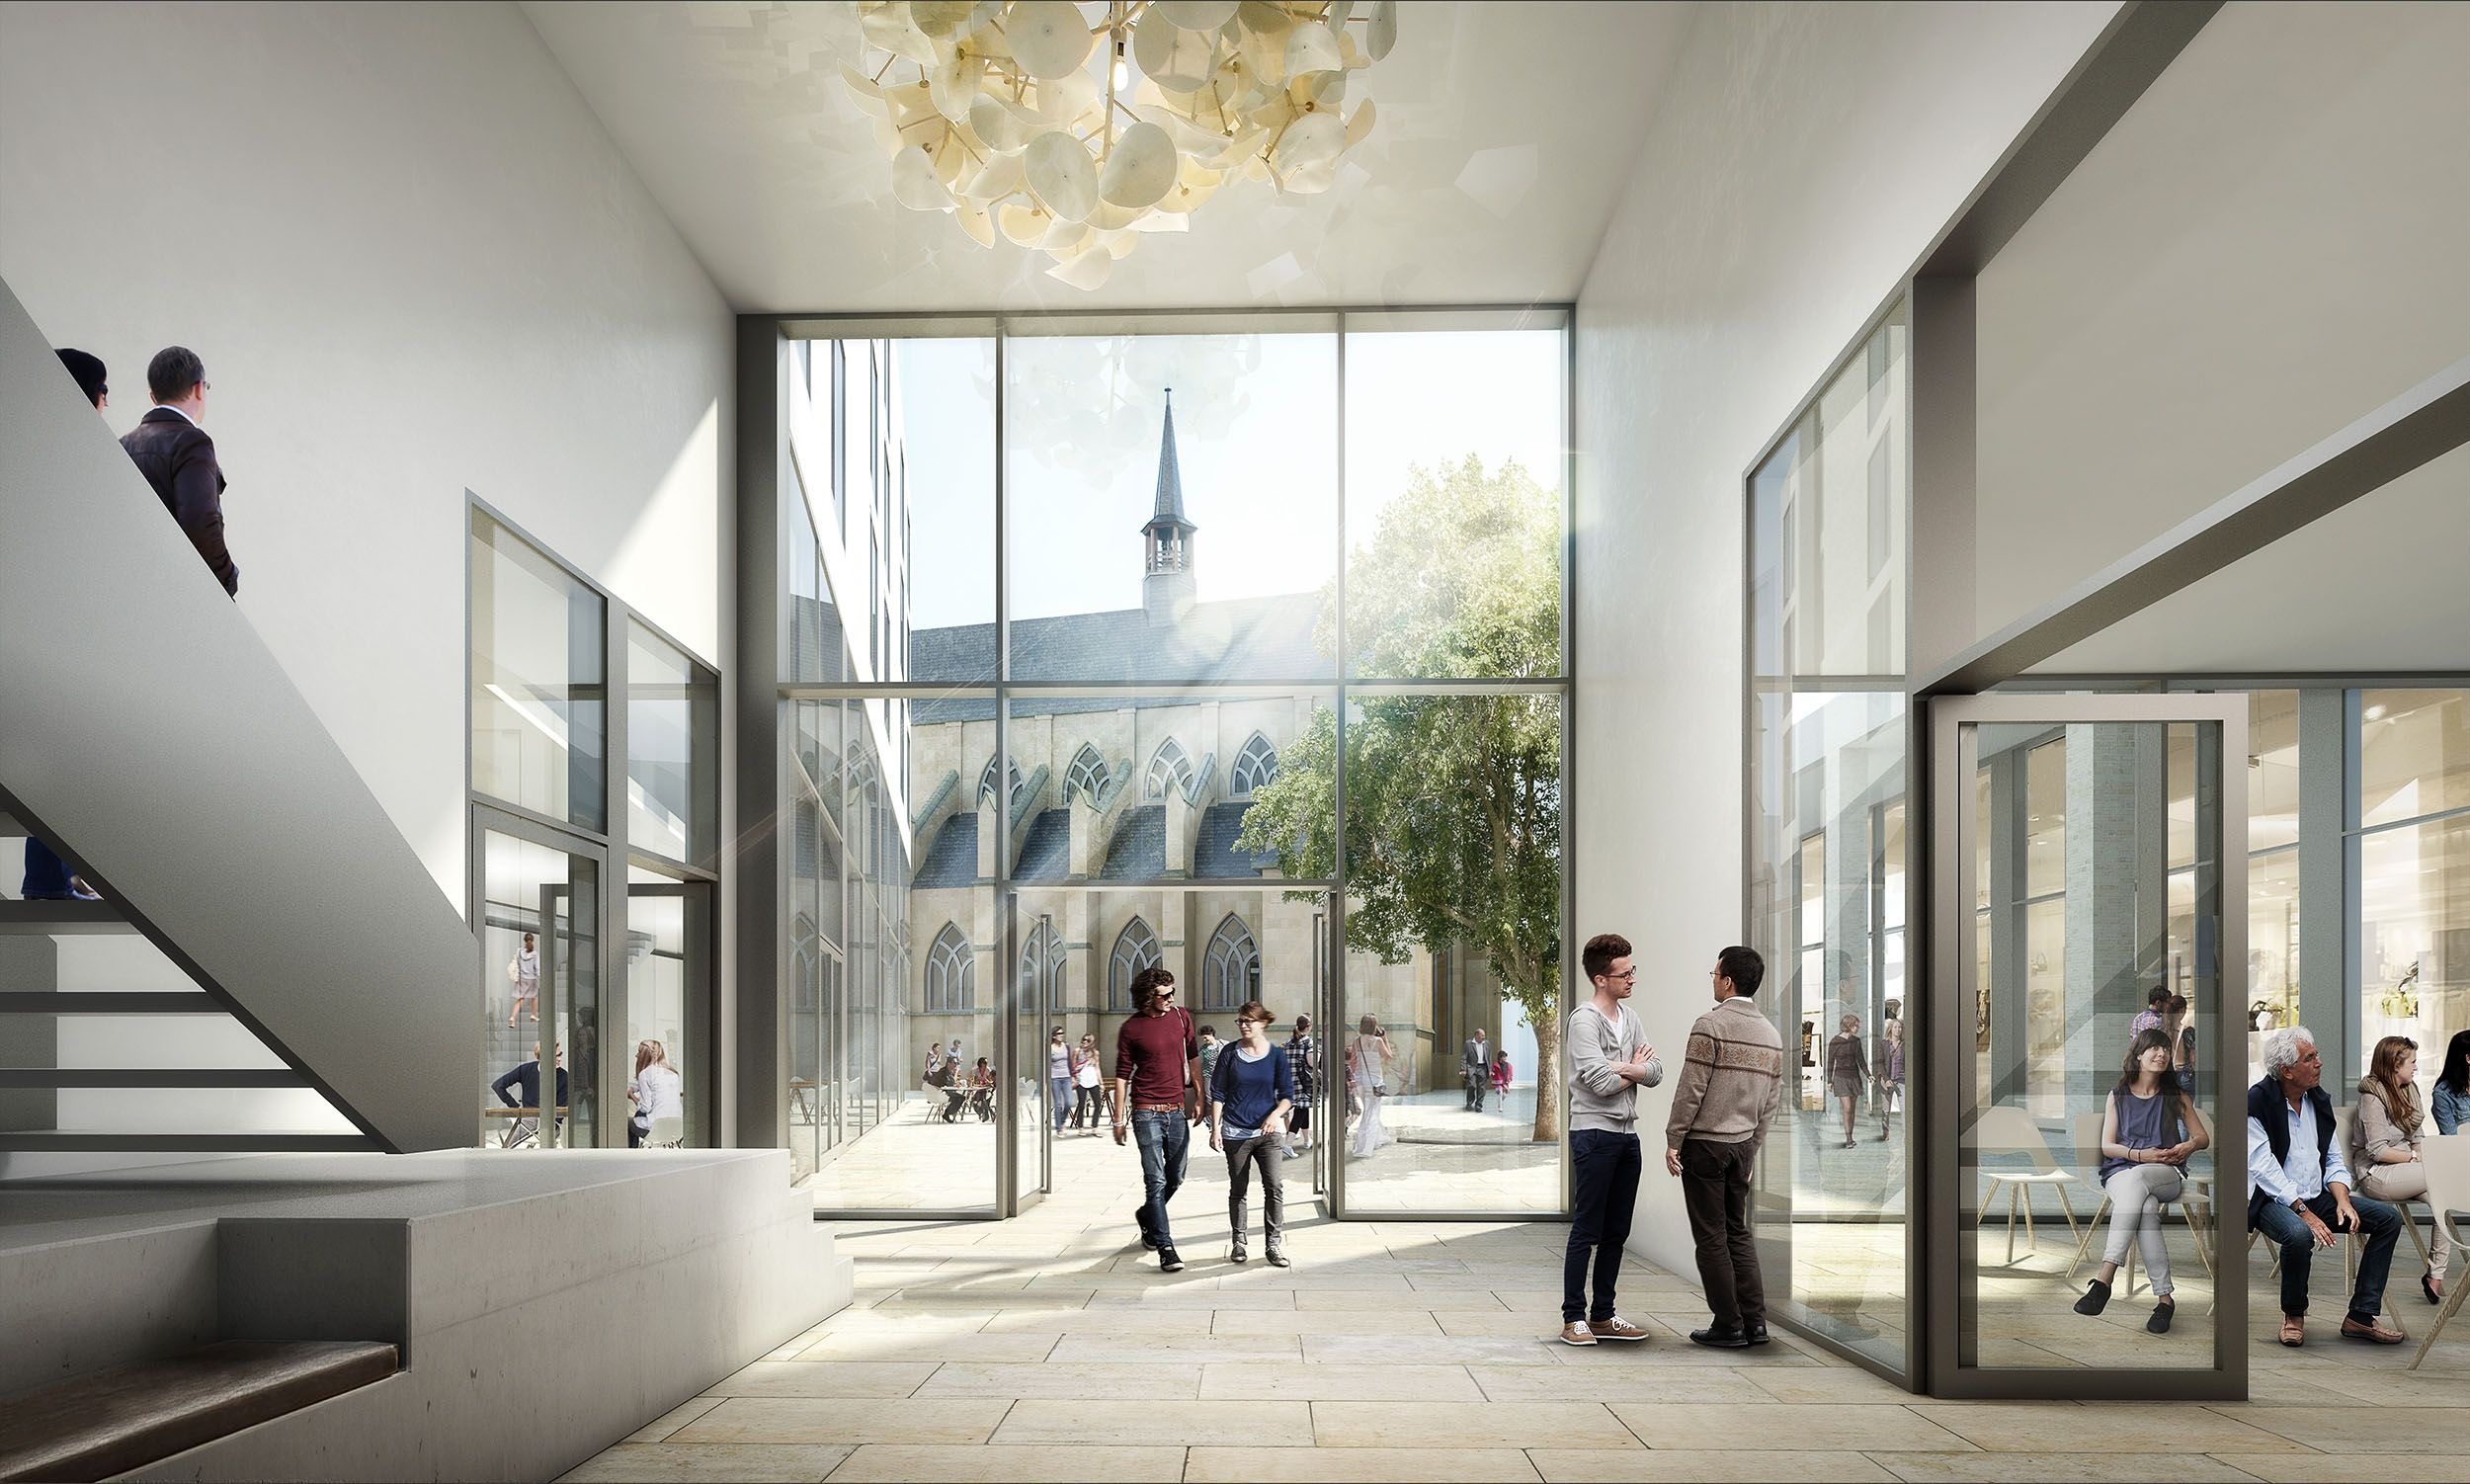 Architektur Rendering Photoshop 3 Preis Foyer Citykirchenzentrum Moka Studio Eins Eins